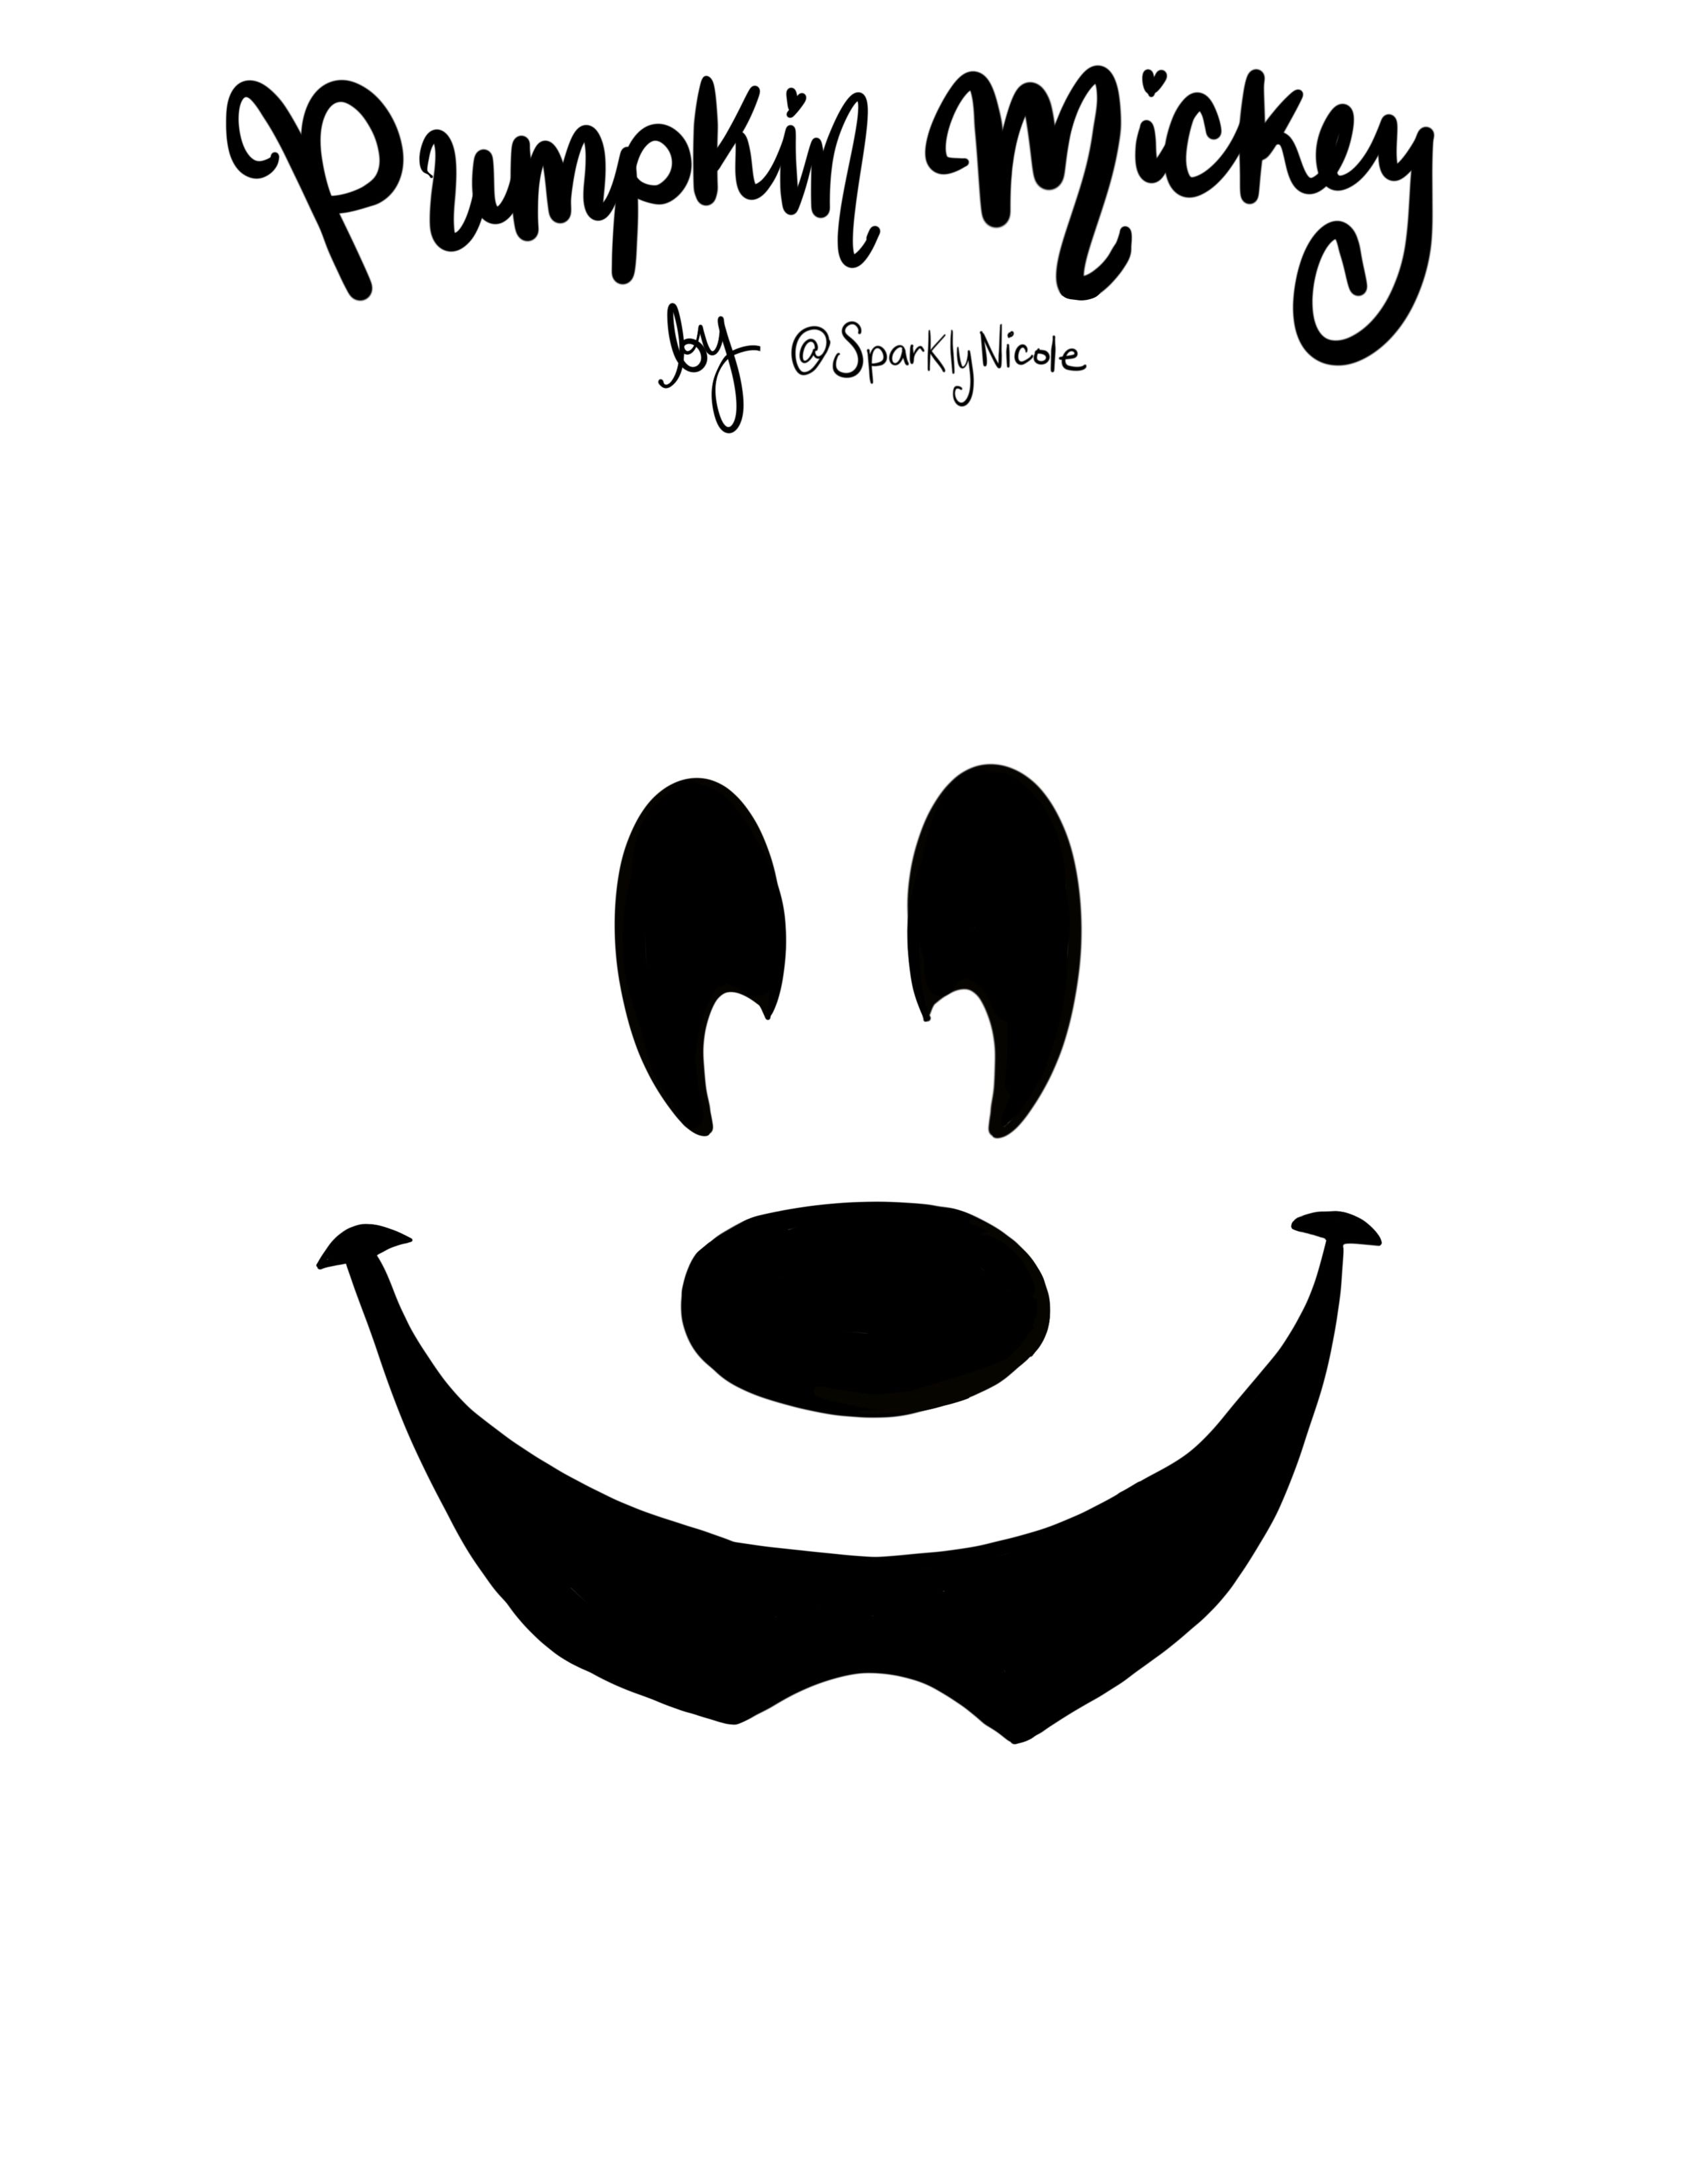 Minnie Mouse Halloween Pumpkin Stencils.Pin On Holiday Activities And Crafts